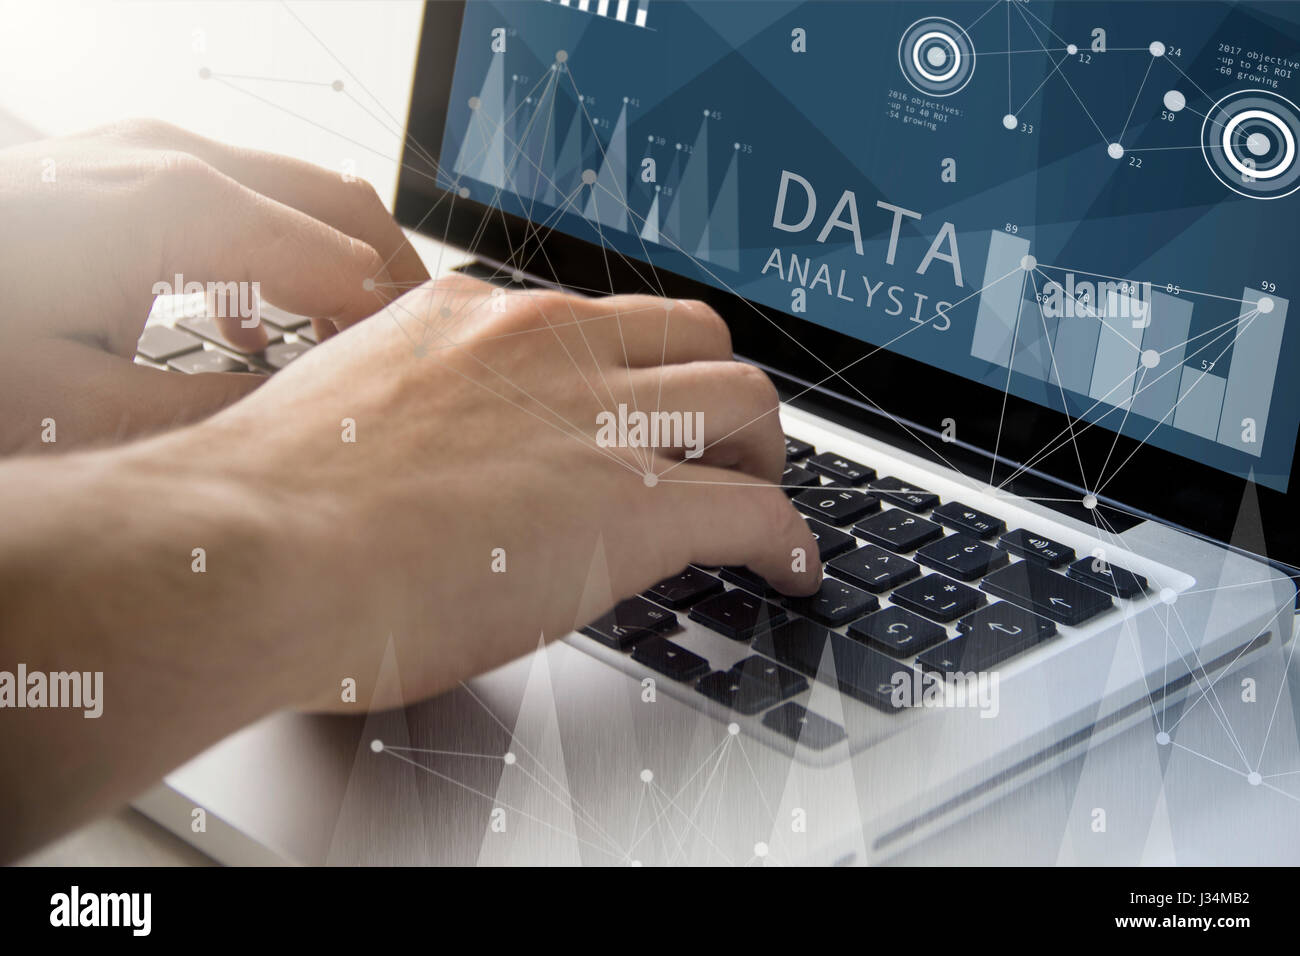 technology and business concept: man using a laptop with data analysis on the screen. All screen graphics are made - Stock Image